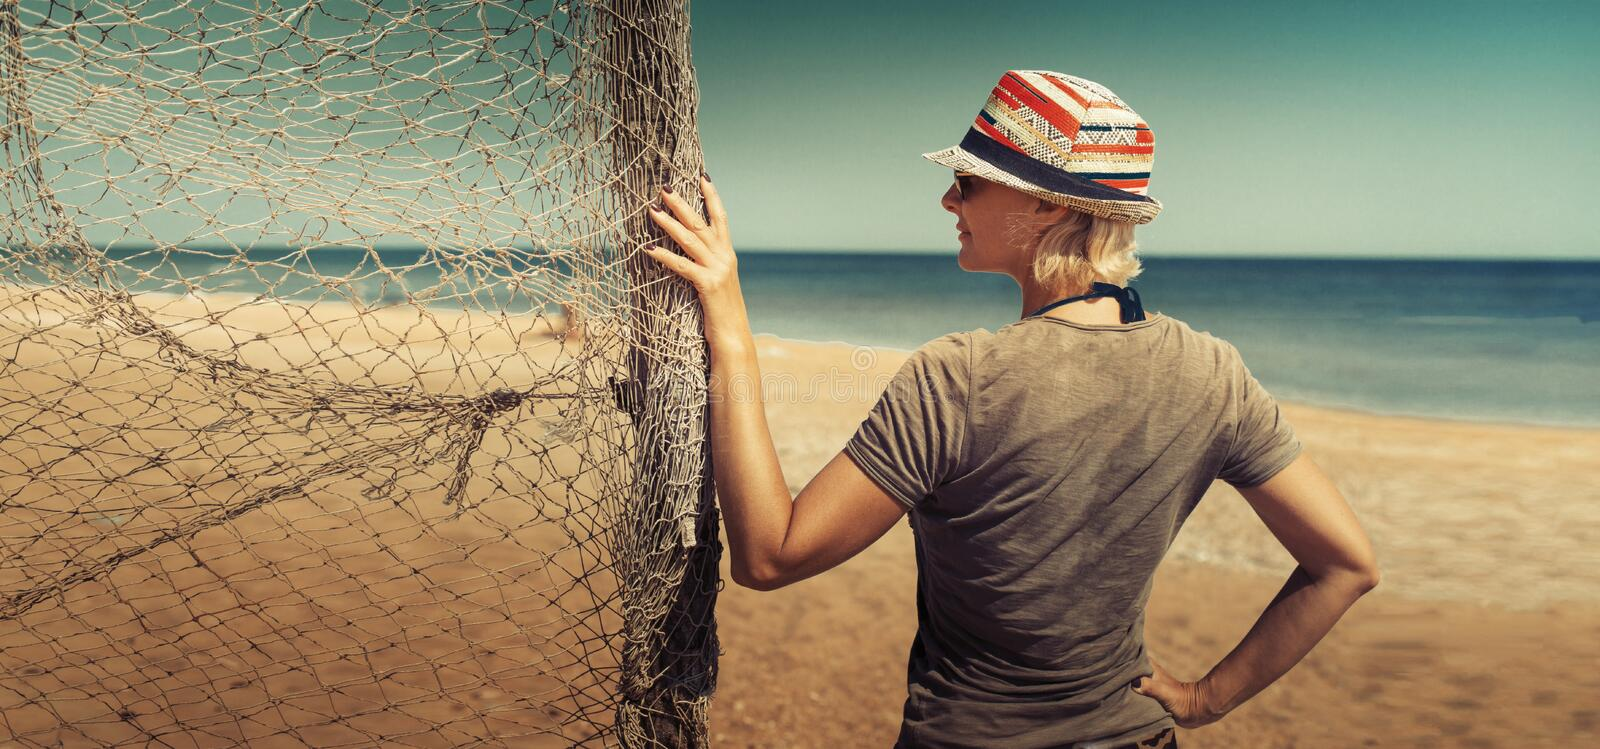 Freedom and happiness Concept. Young woman on the beach enjoy of summer sea view during travel in holiday, idea banner for text stock images